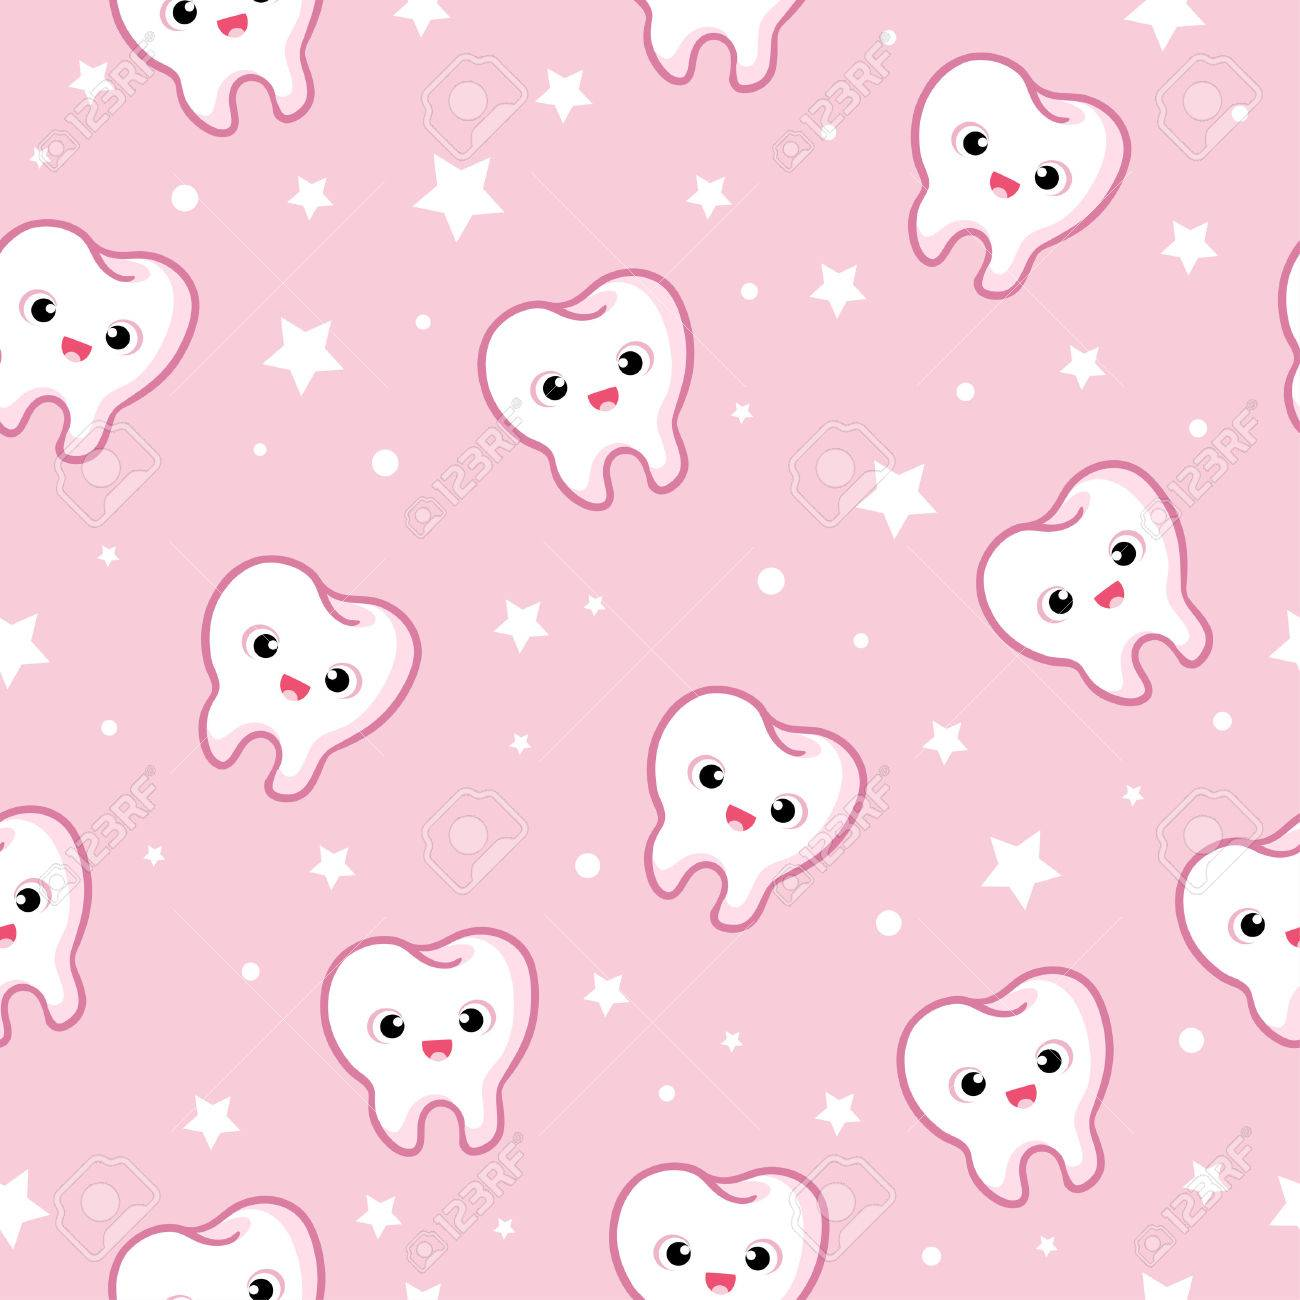 seamless illustration with teeth on a pink background - 60616987